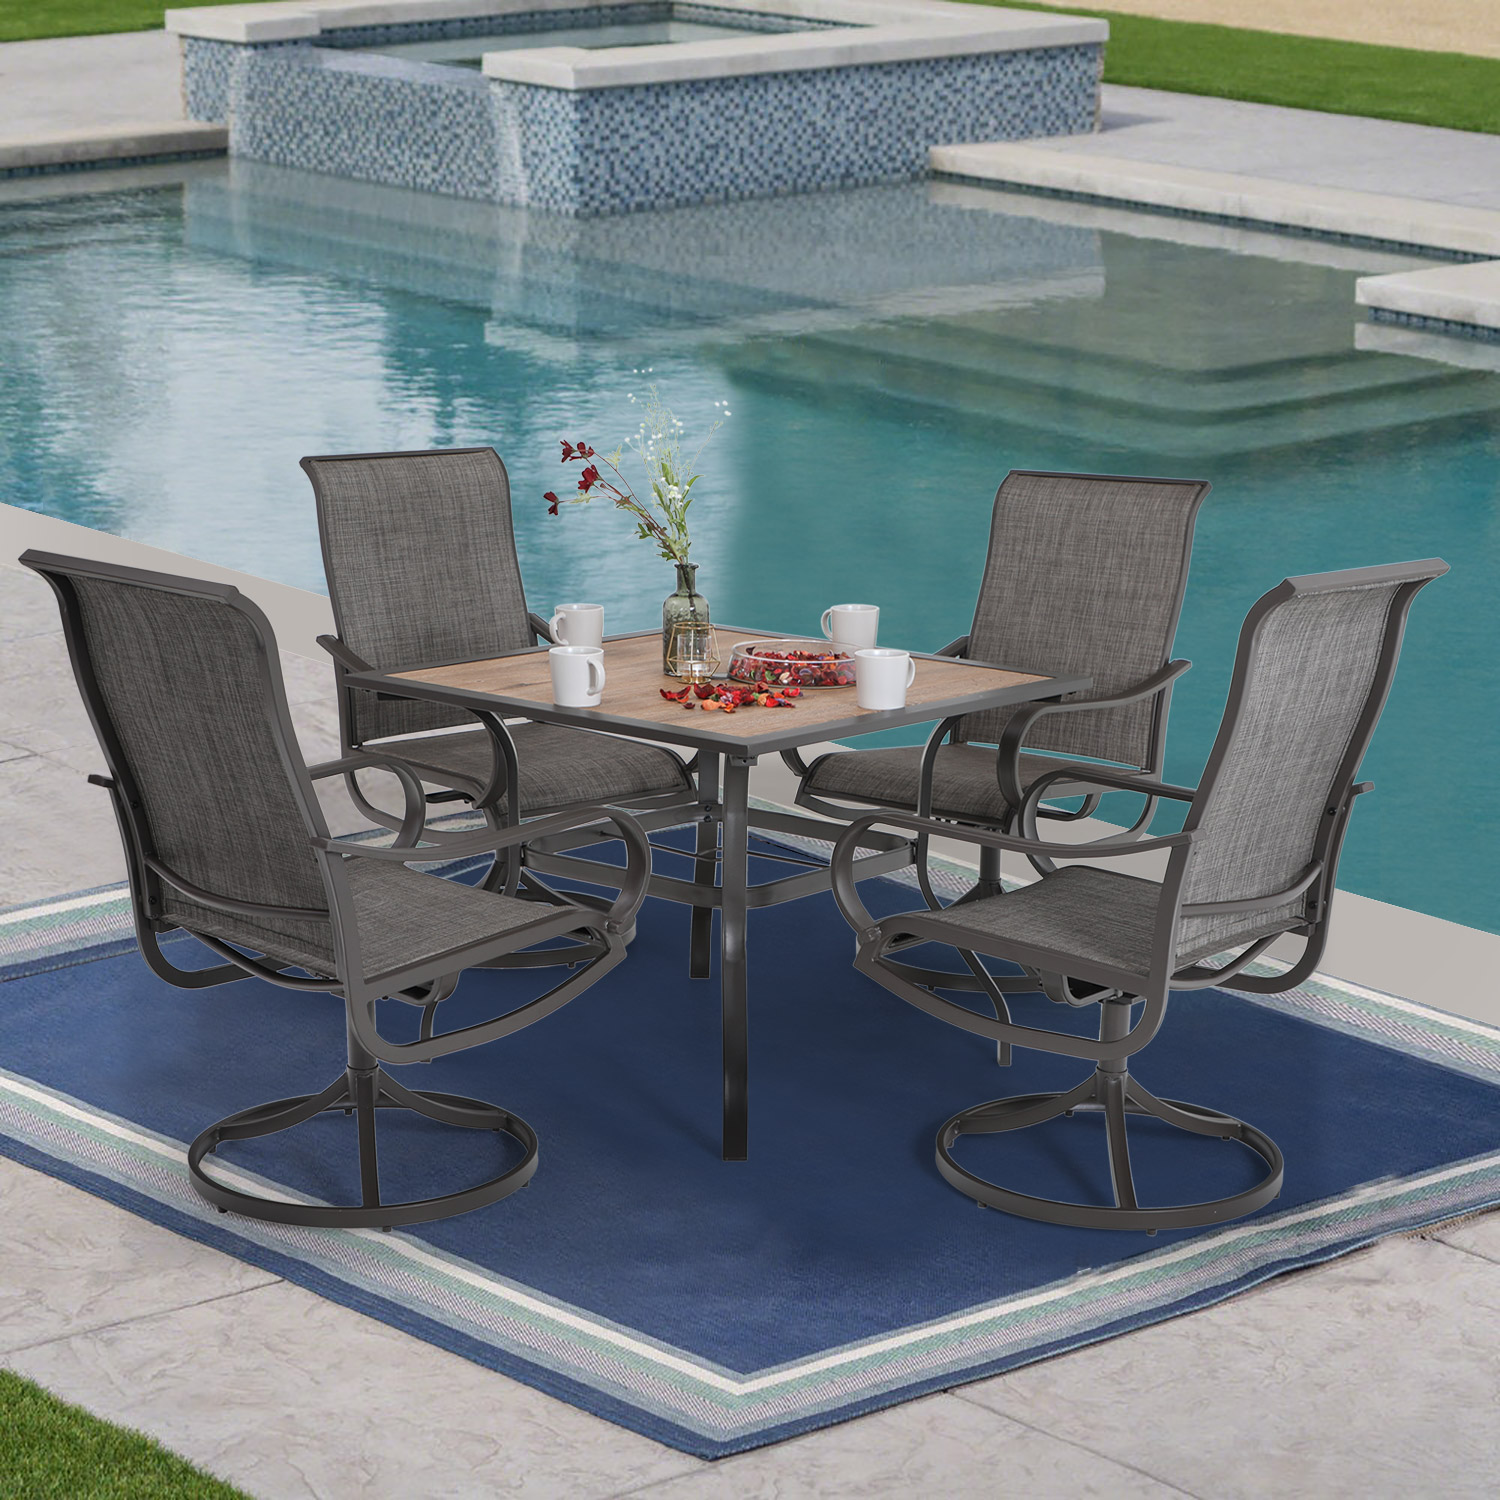 mf studio 5pcs patio dining set 1 square 37 x 37 umbrella table and 4 swivel chairs furniture set suitable for backyard garden patio